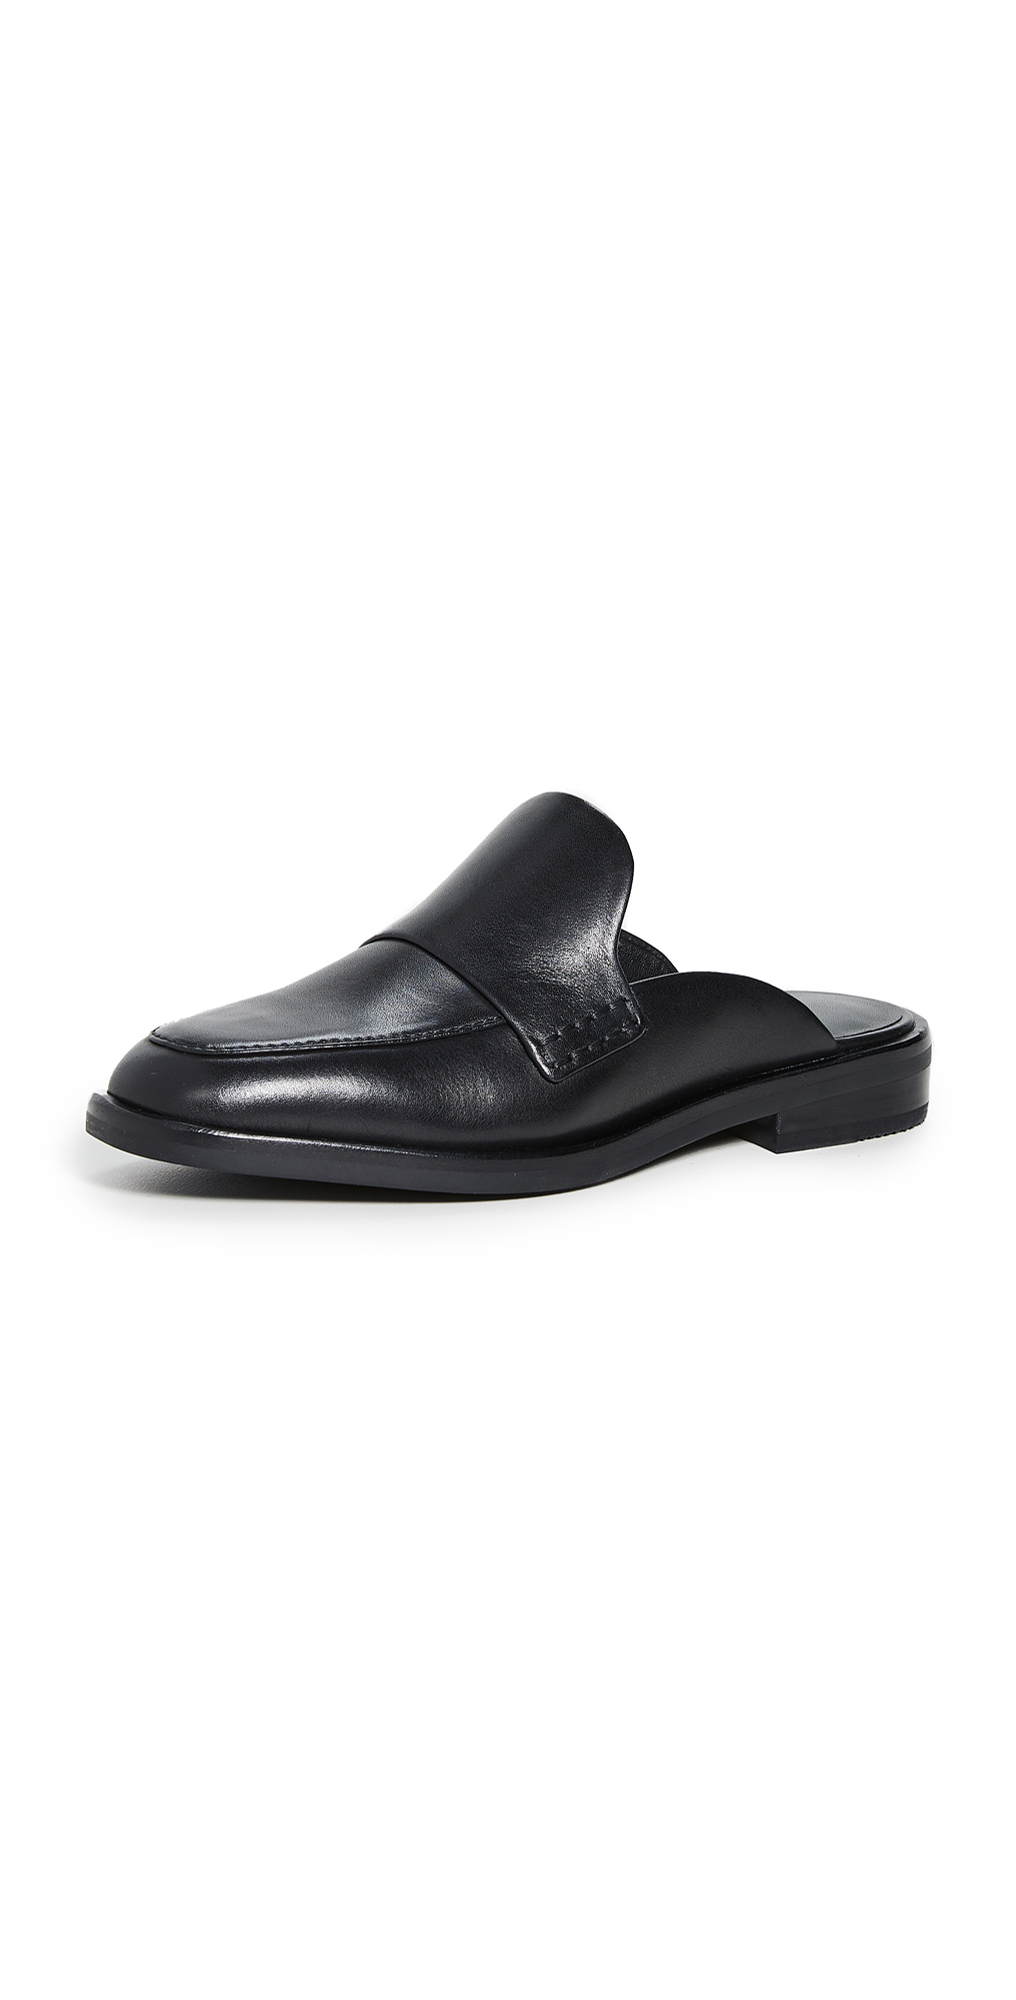 3.1 Phillip Lim Alexa 25mm Loafer Mules